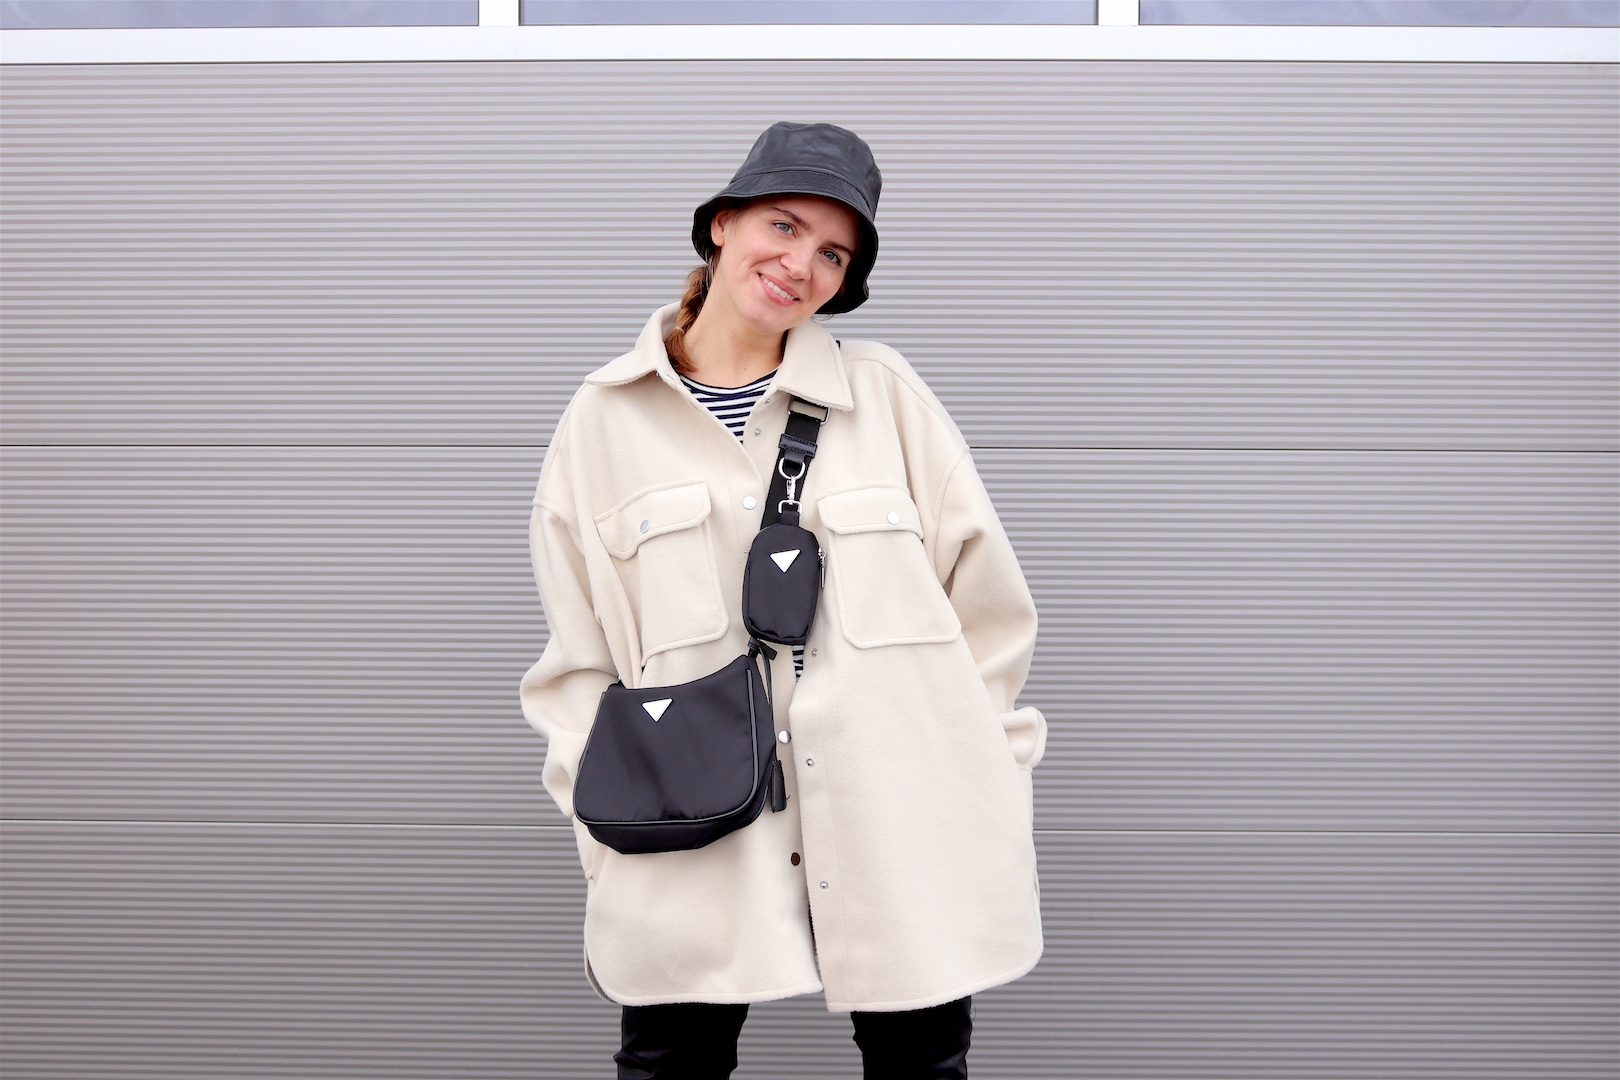 Faux Leather Look. Fashion and Style Blog Girl from Heartfelt Hunt. Girl with blonde braid wearing a faux leather bucket hat, shacket, striped tee, faux leather pants, 90s bag and faux leather combat boots.